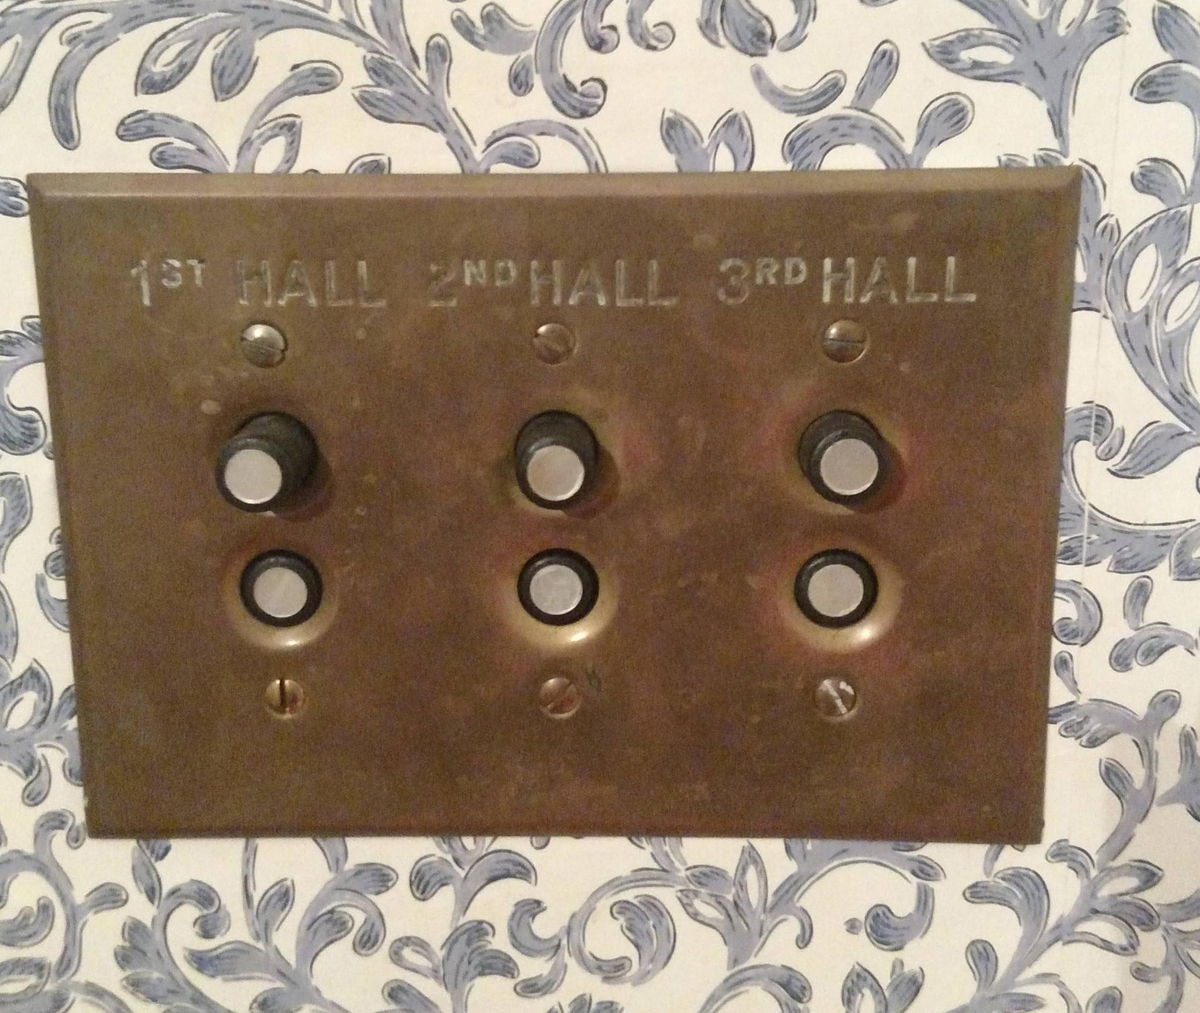 Old-fashioned button light switches hang on a wall.